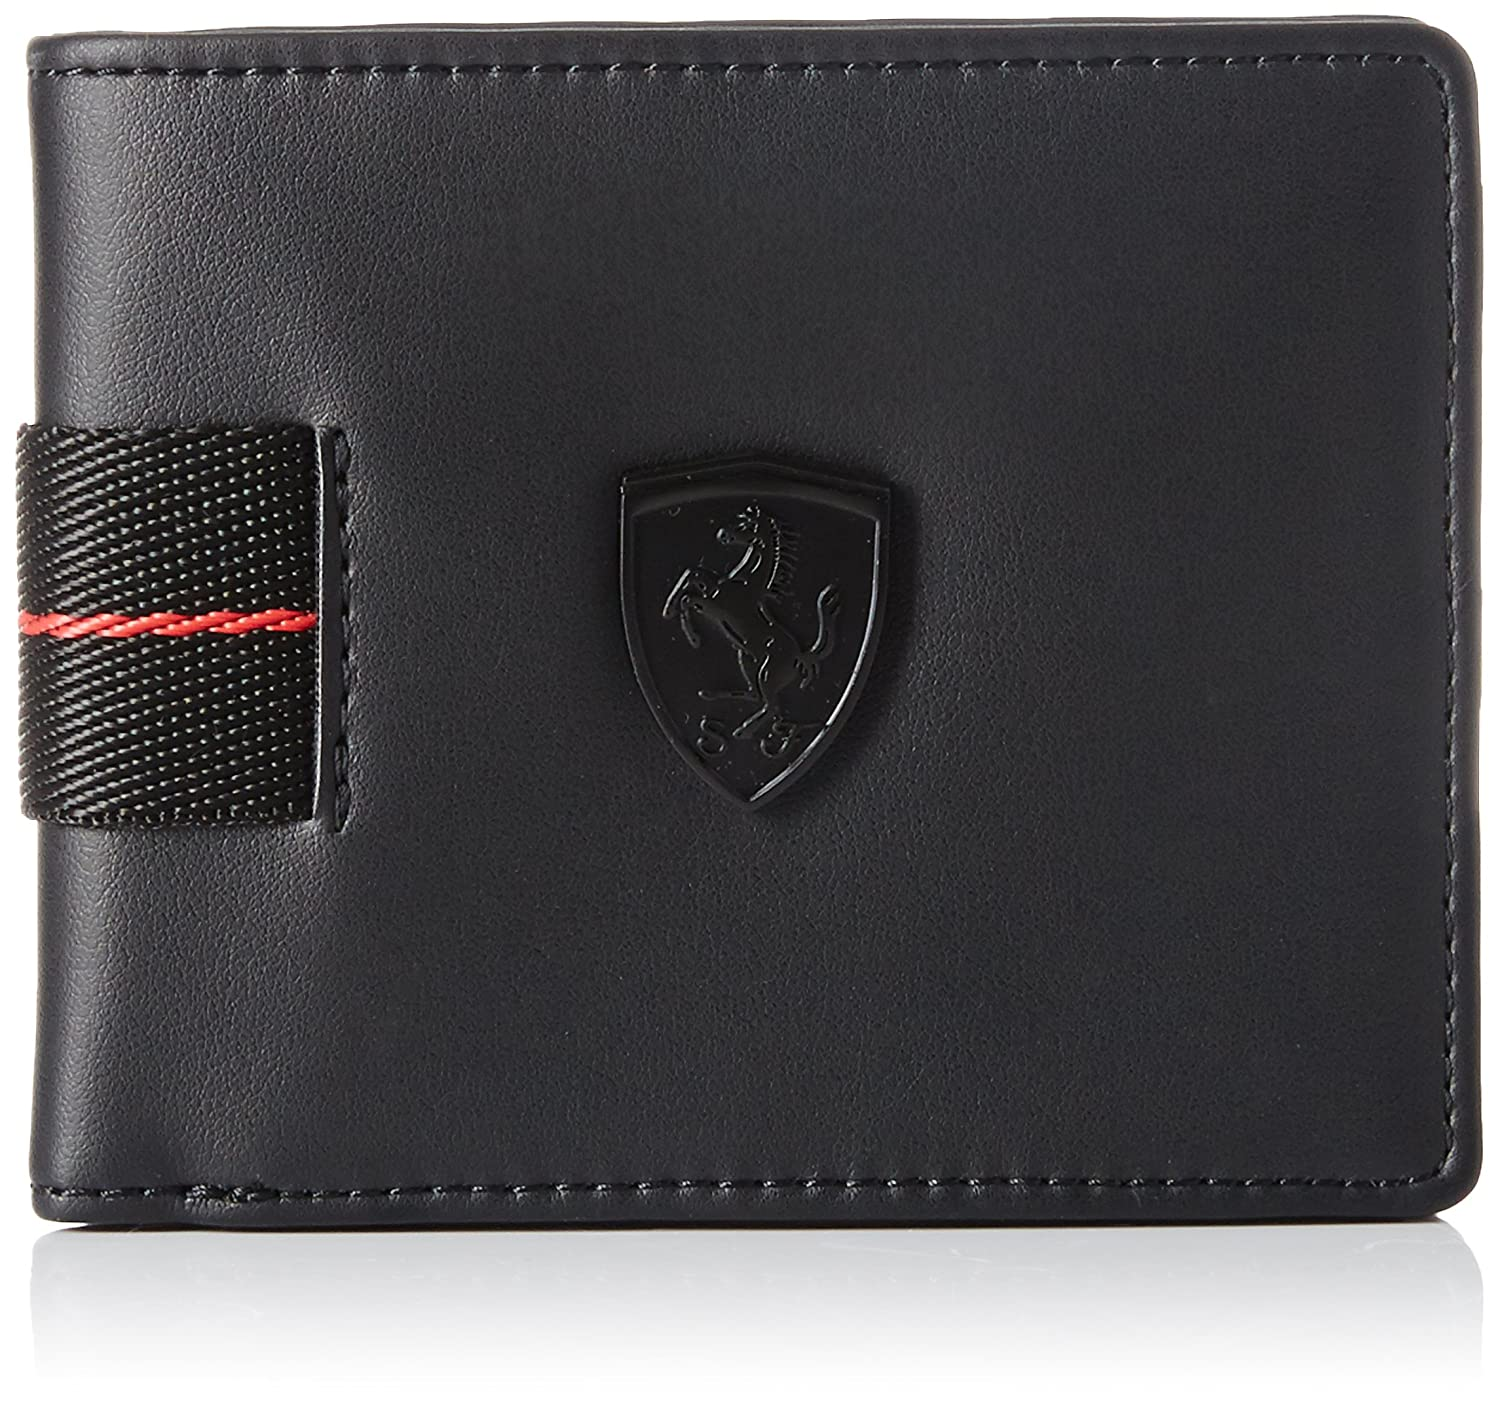 0a5028a156dd puma bmw wallet black on sale   OFF41% Discounts